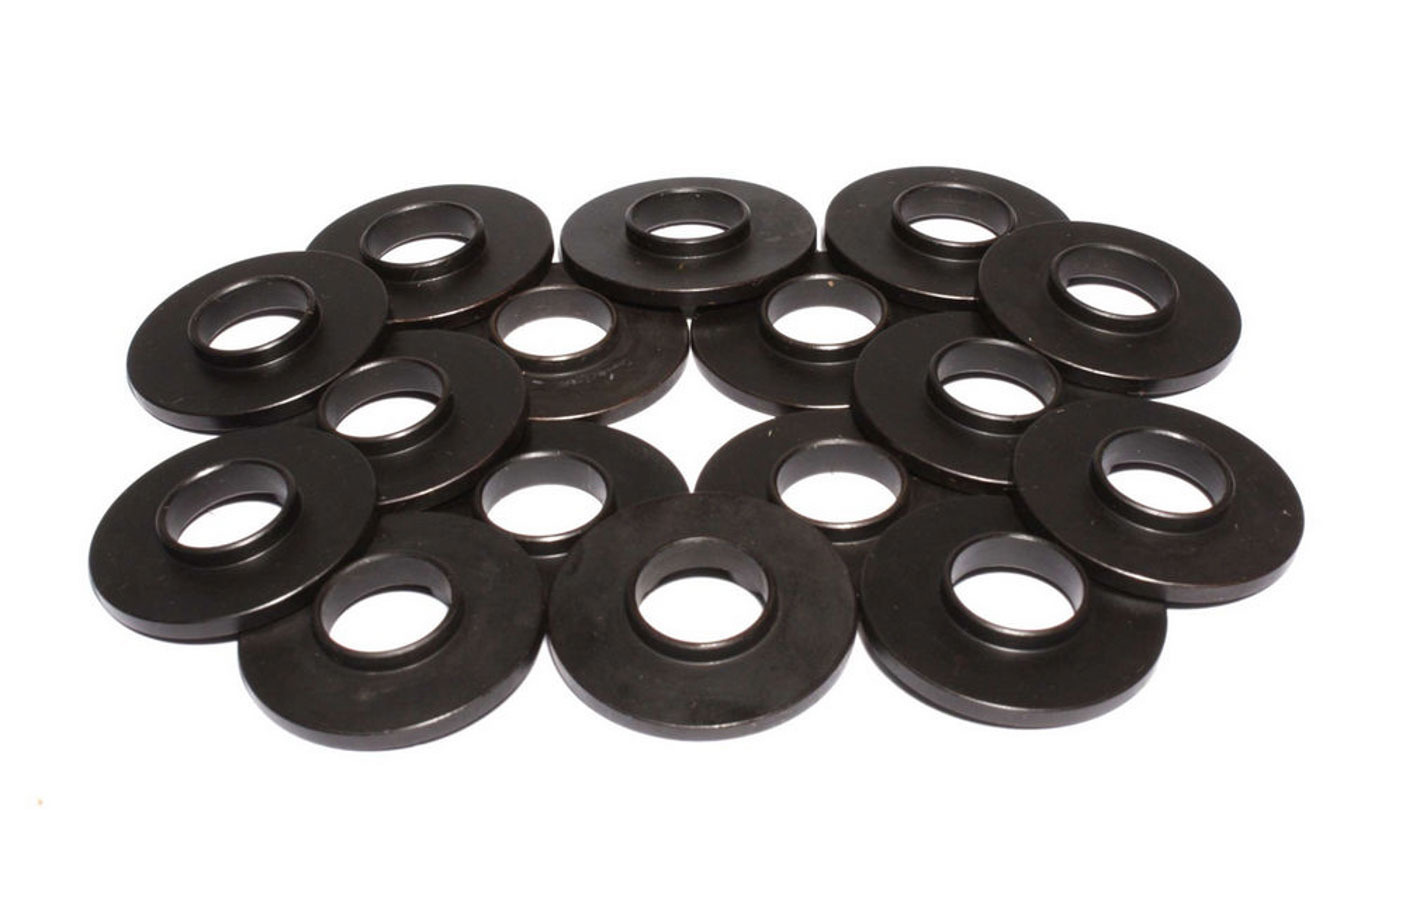 Comp Cams 4863-16 Valve Spring Locator, Inside, 0.060 in Thick, 1.300 in OD, 0.570 in ID, 0.840 in Spring ID, Steel, Set of 16